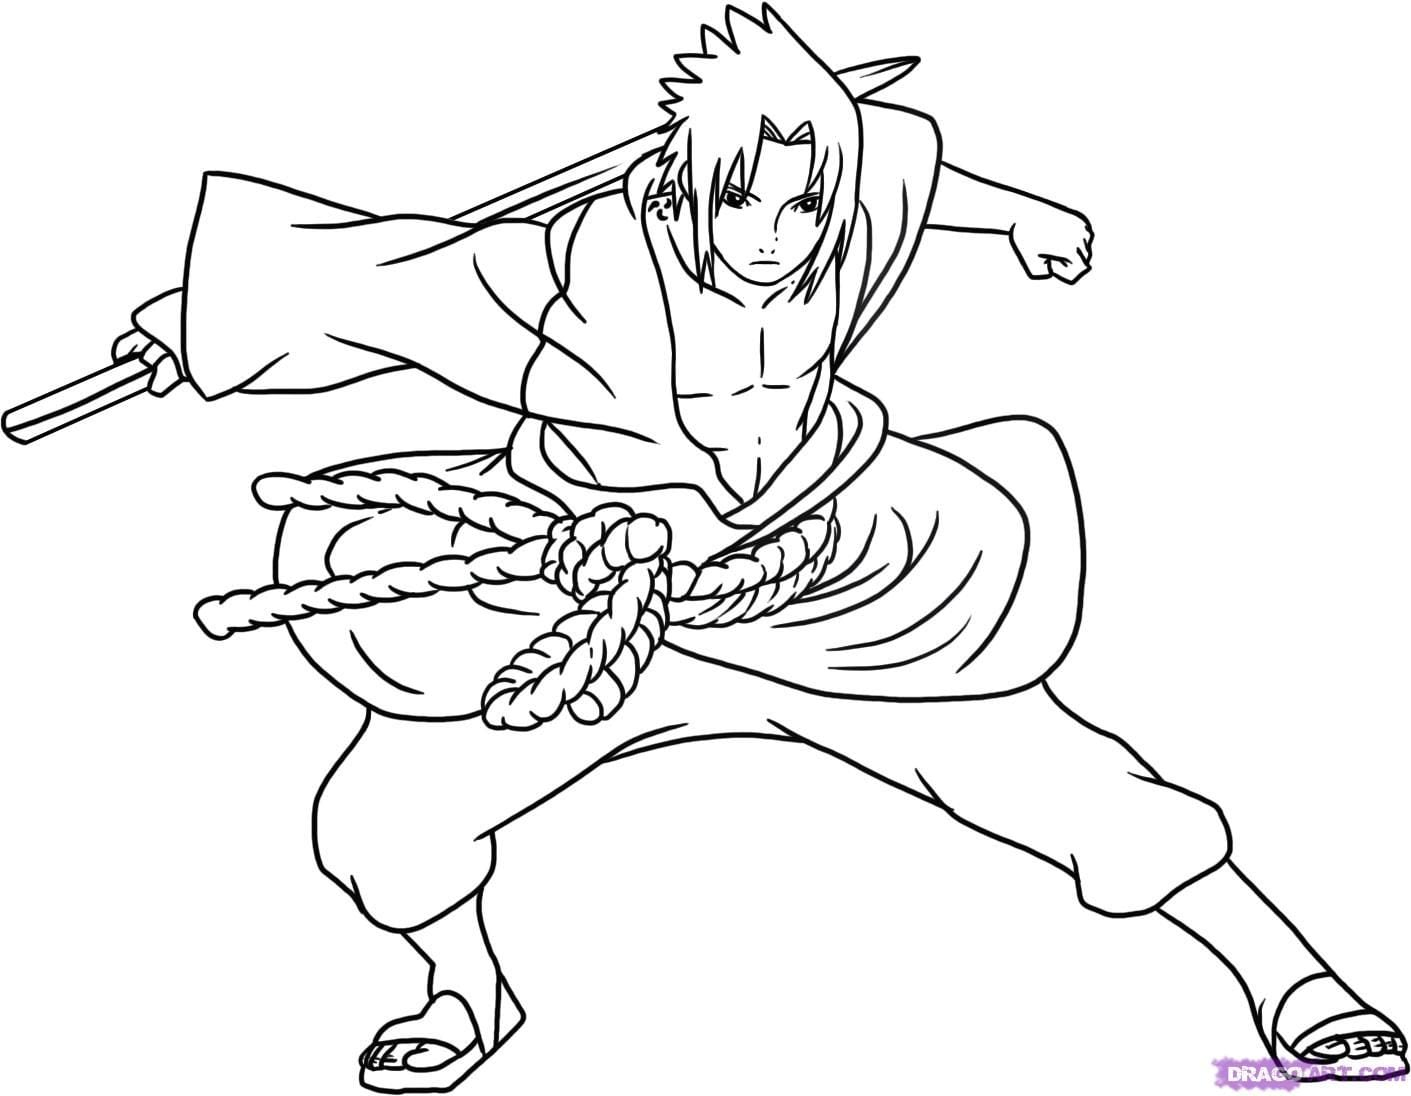 Naruto Vs Sasuke Coloring Pages